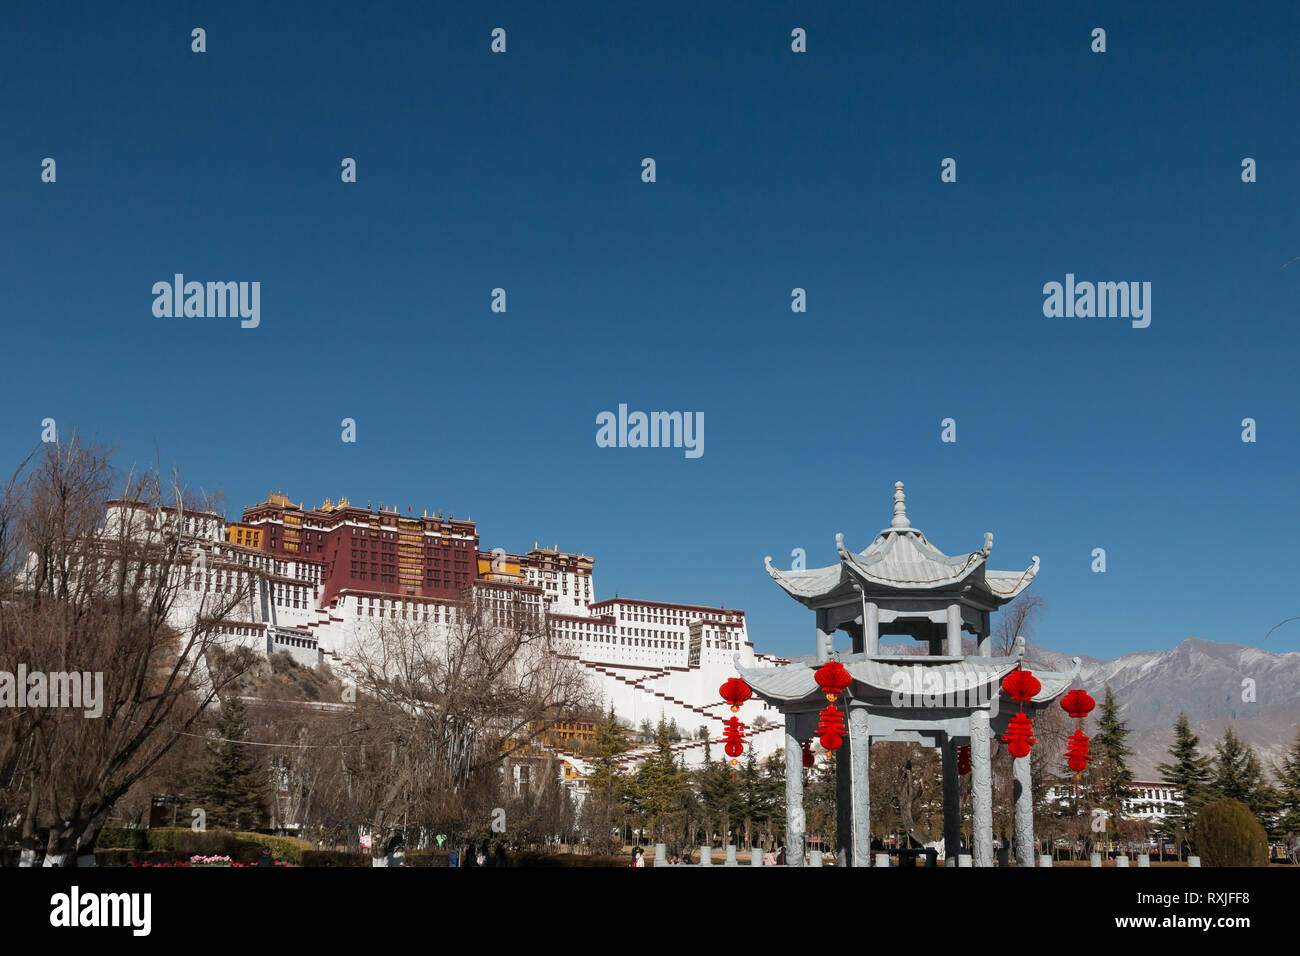 Potala Palace in Lhasa, Tibet - a spectacular palace set on a hillside which was once home to the Dalai Lama and is now a popular tourist destination. - Stock Image